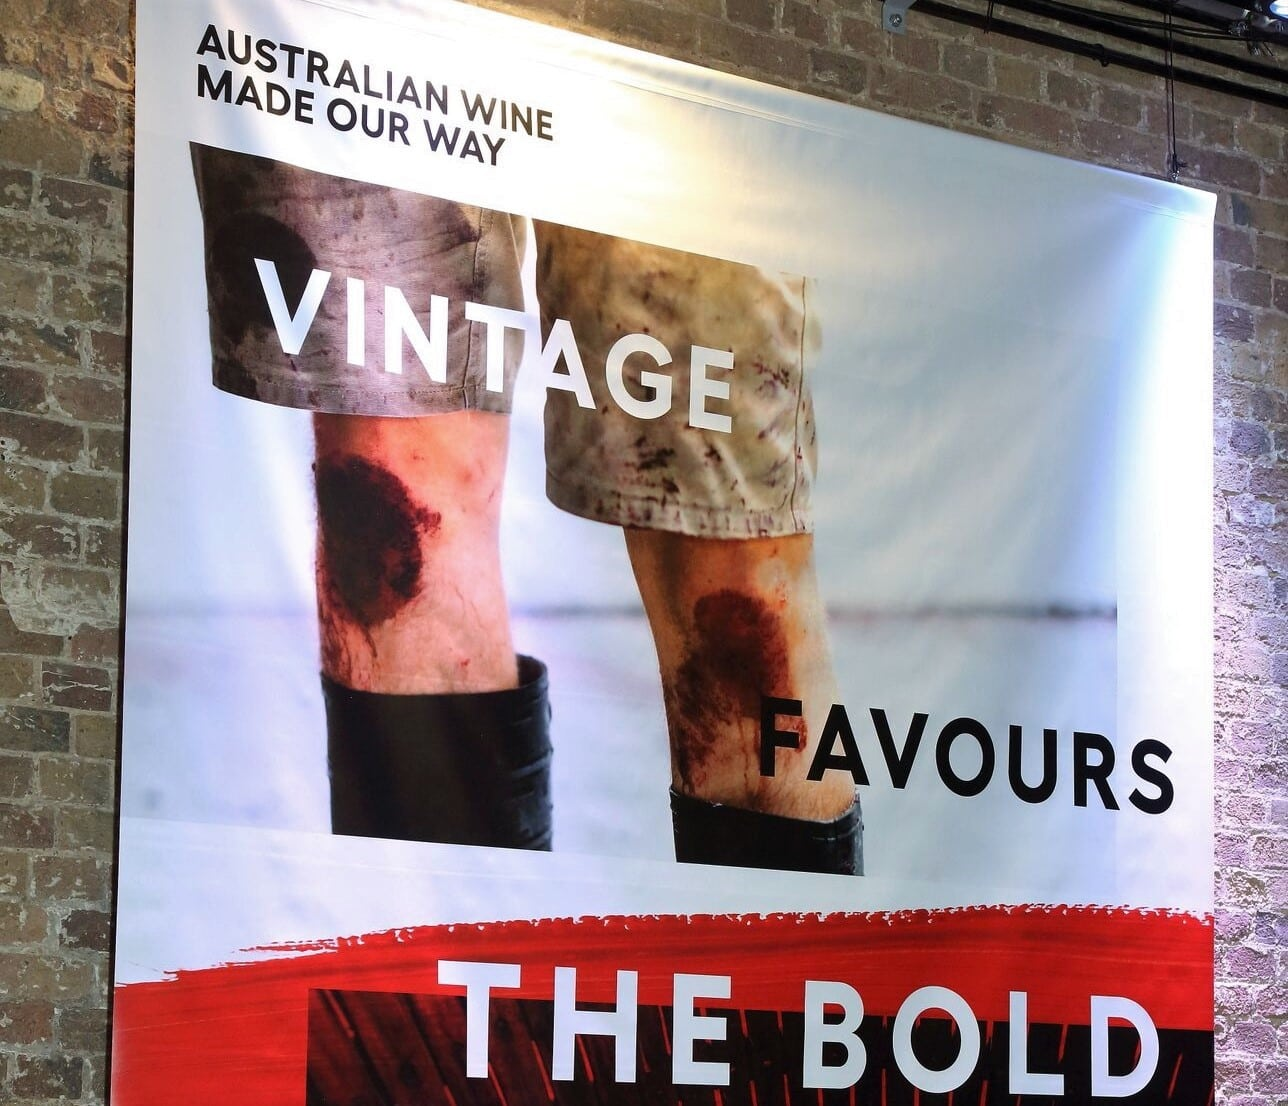 Cutting edge Australian wine